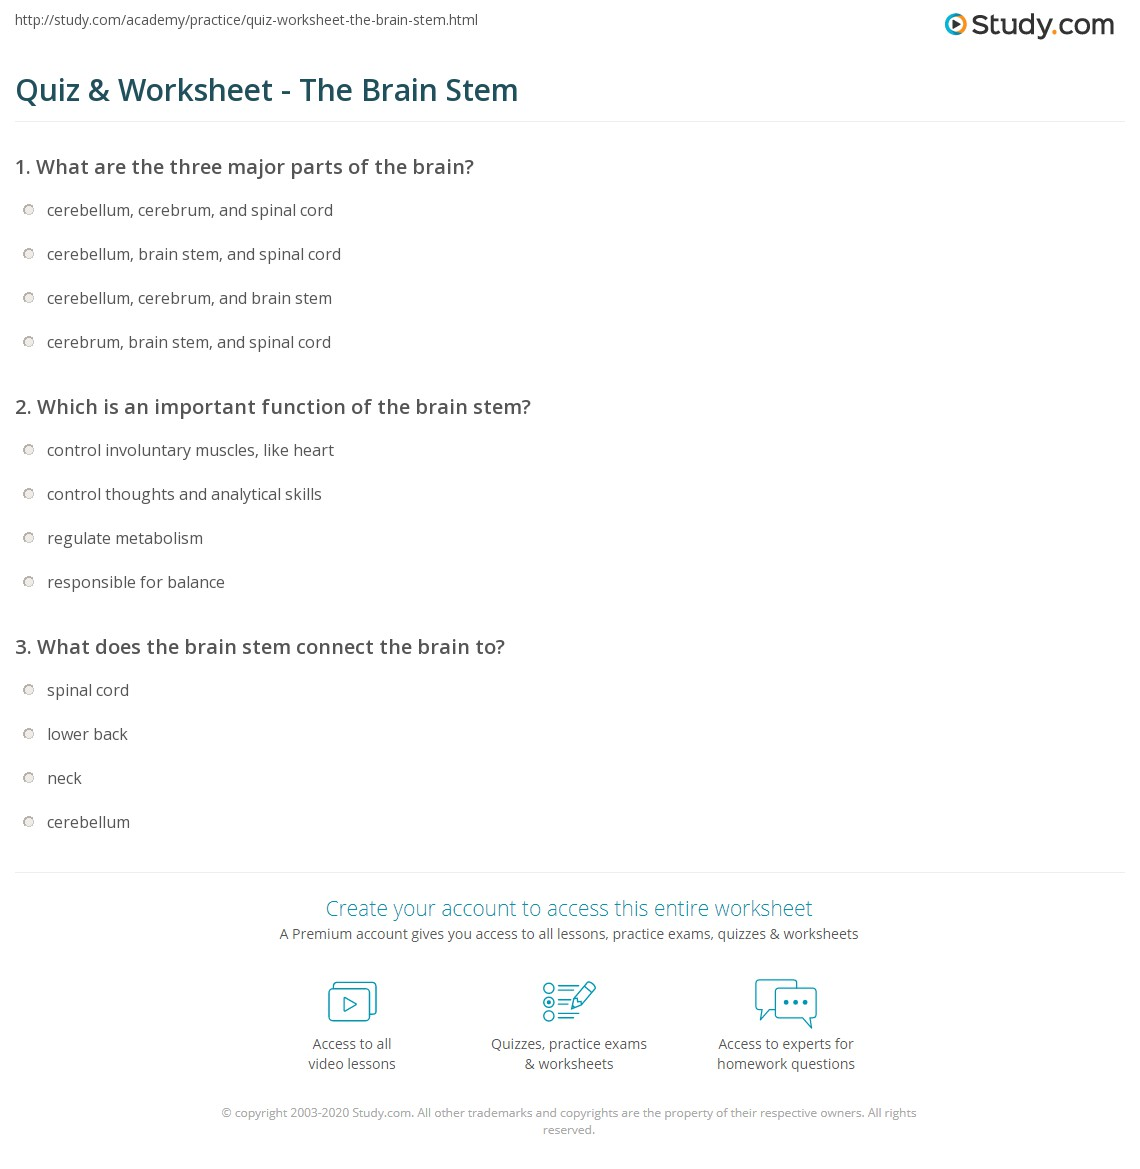 Quiz & Worksheet - The Brain Stem | Study.com